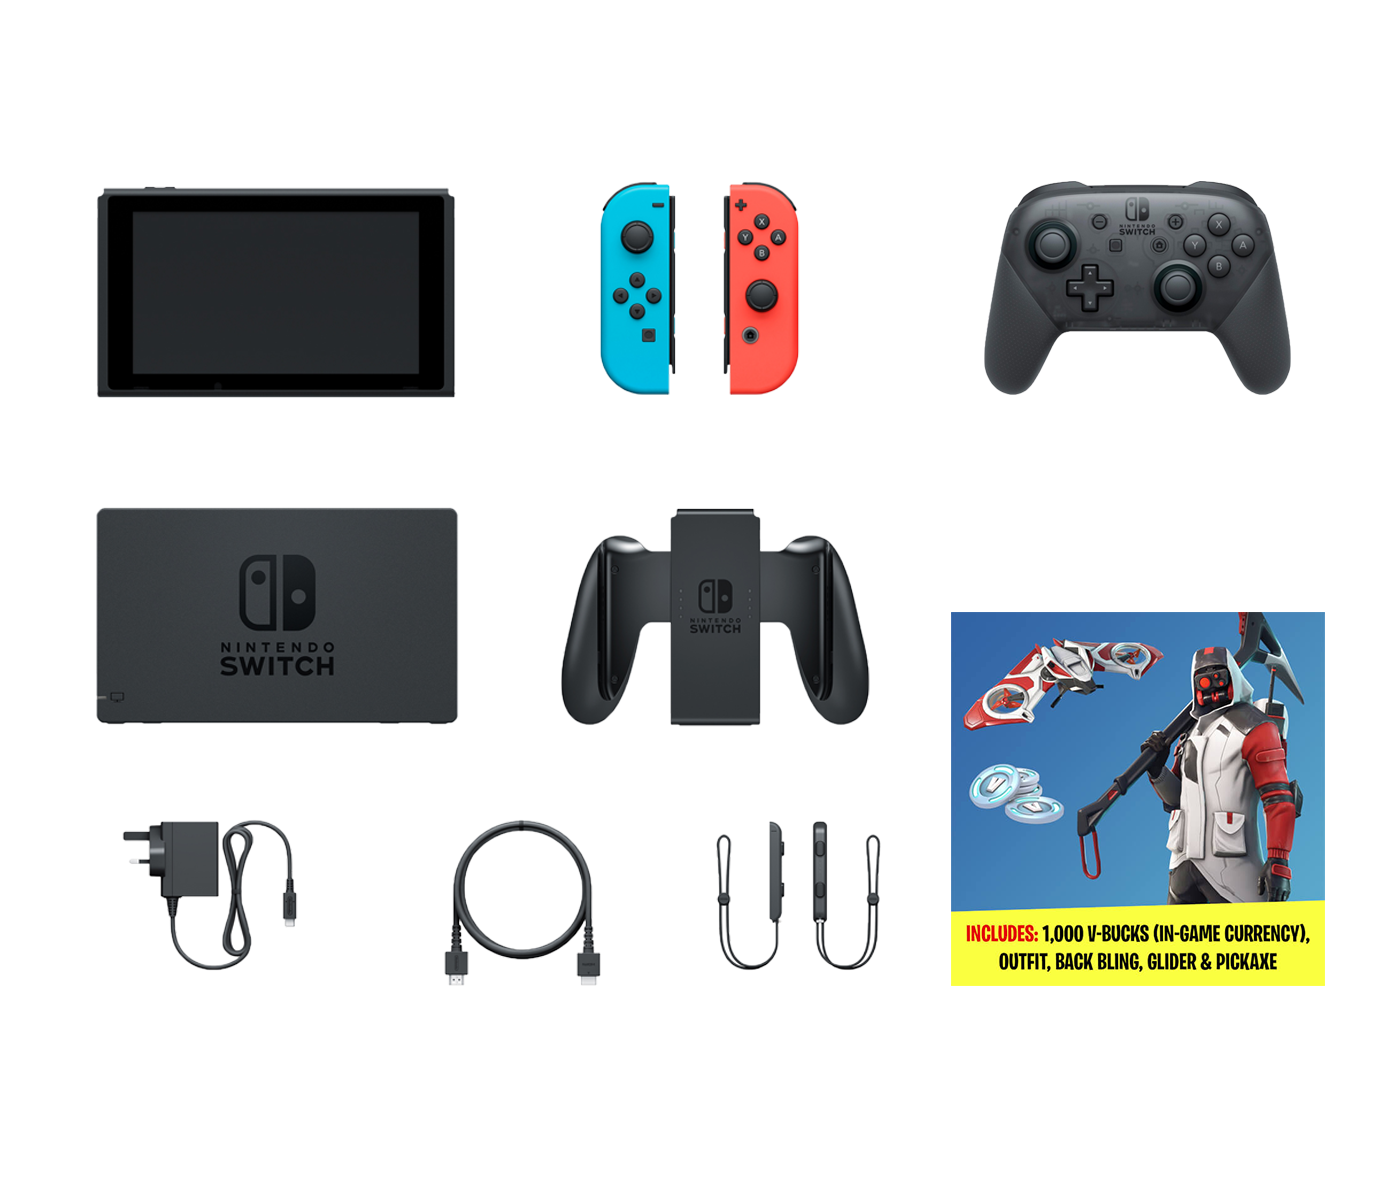 Buy Nintendo Switch Fortnite Bonus Epic Bundle Fortnite Double Helix Set 1000 V Bucks Nintendo Switch Pro Controller And Nintendo Switch 32gb Console With Neon Red And Neon Blue Joy Con Online In Jordan